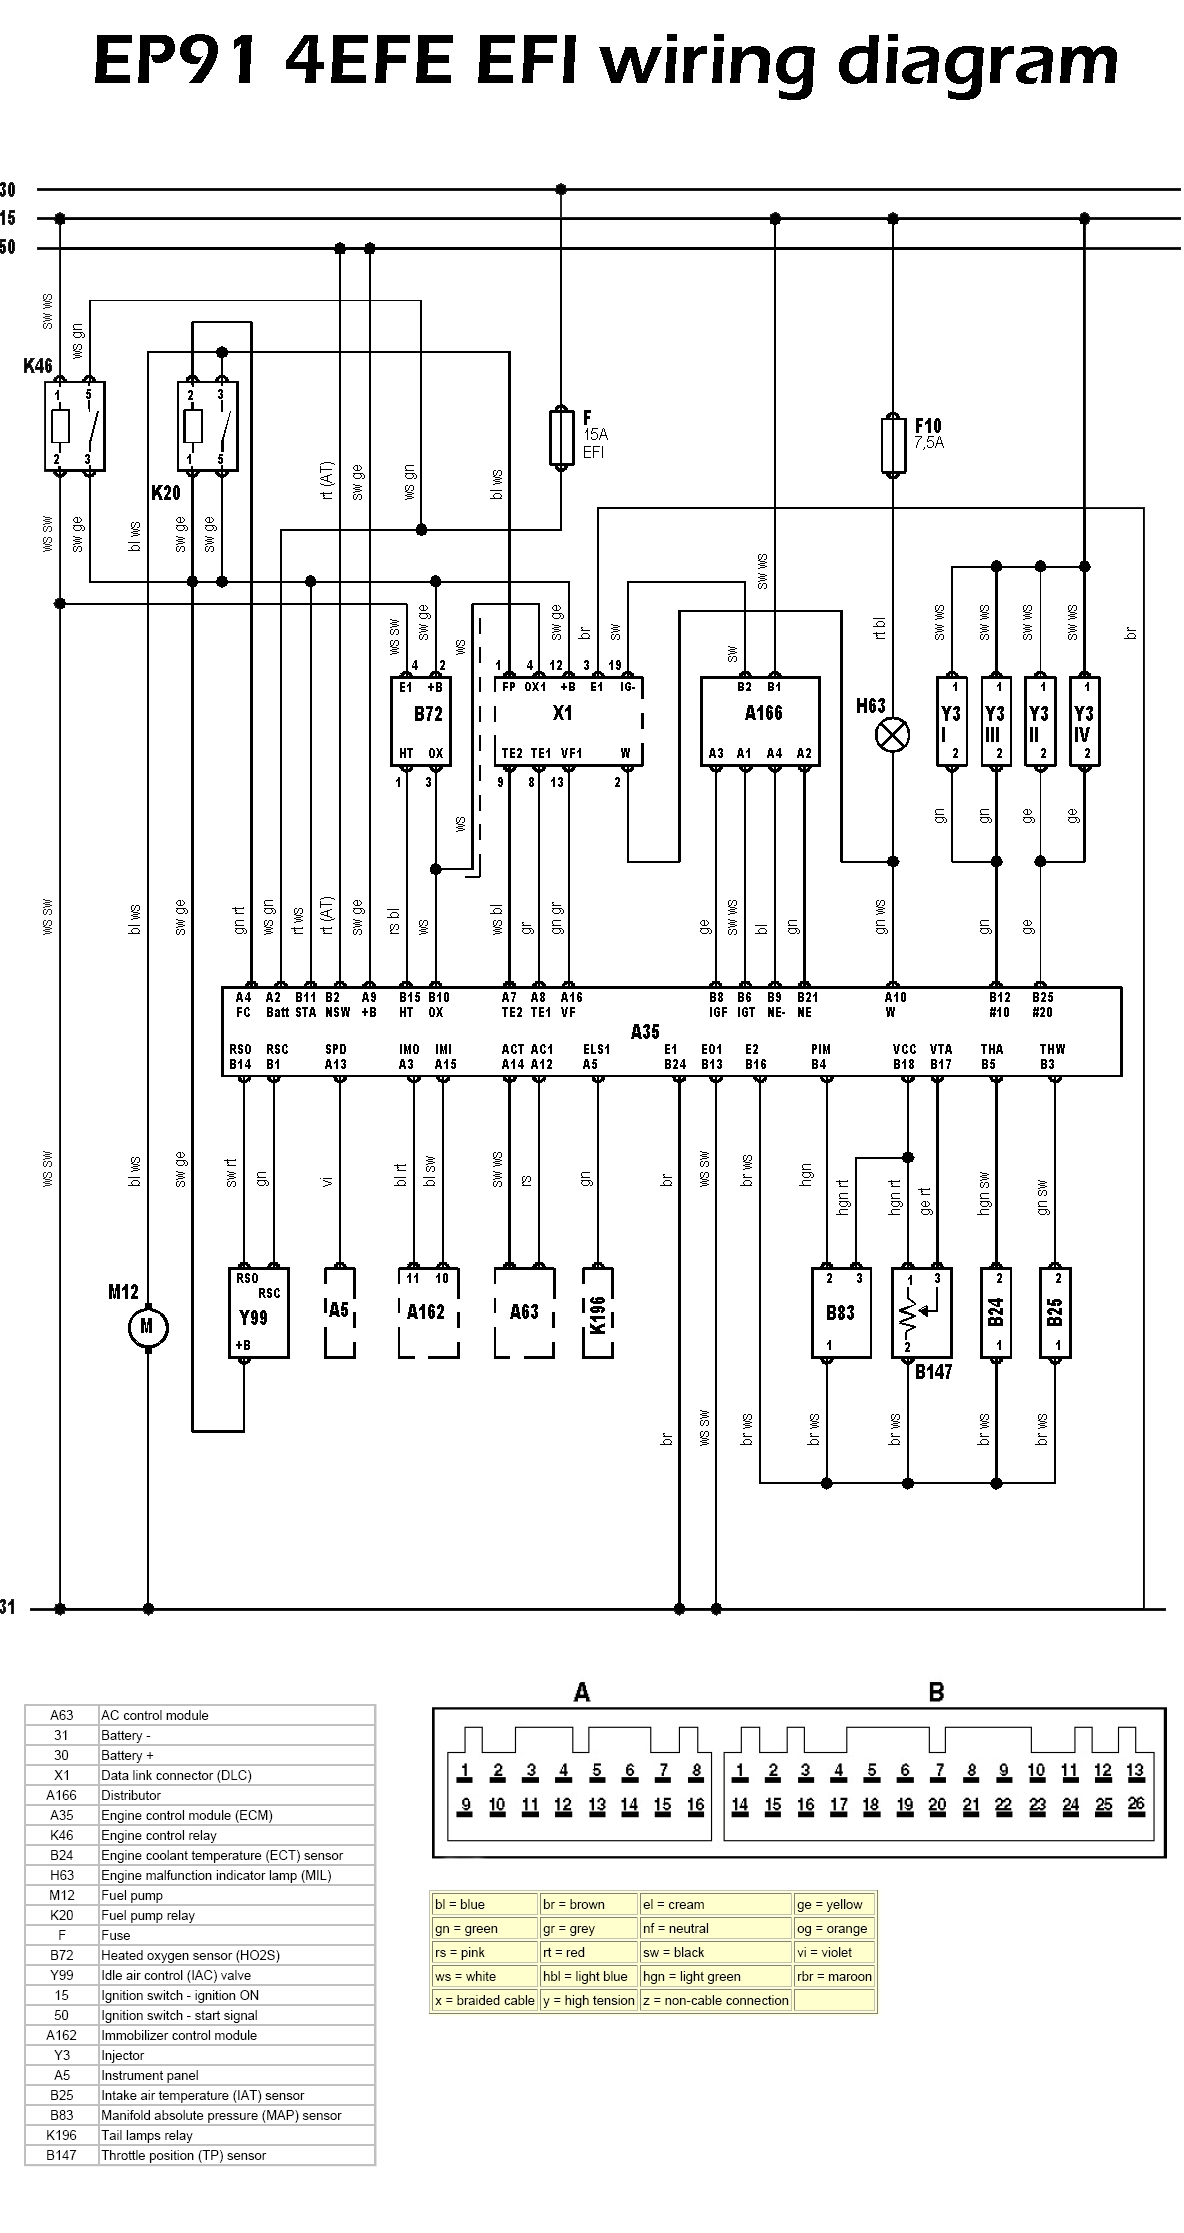 ep91_4efe_ecu_wiring_diagram toyota starlet ep91 wiring diagram efcaviation com toyota starlet ep82 iginition wiring diagram at n-0.co